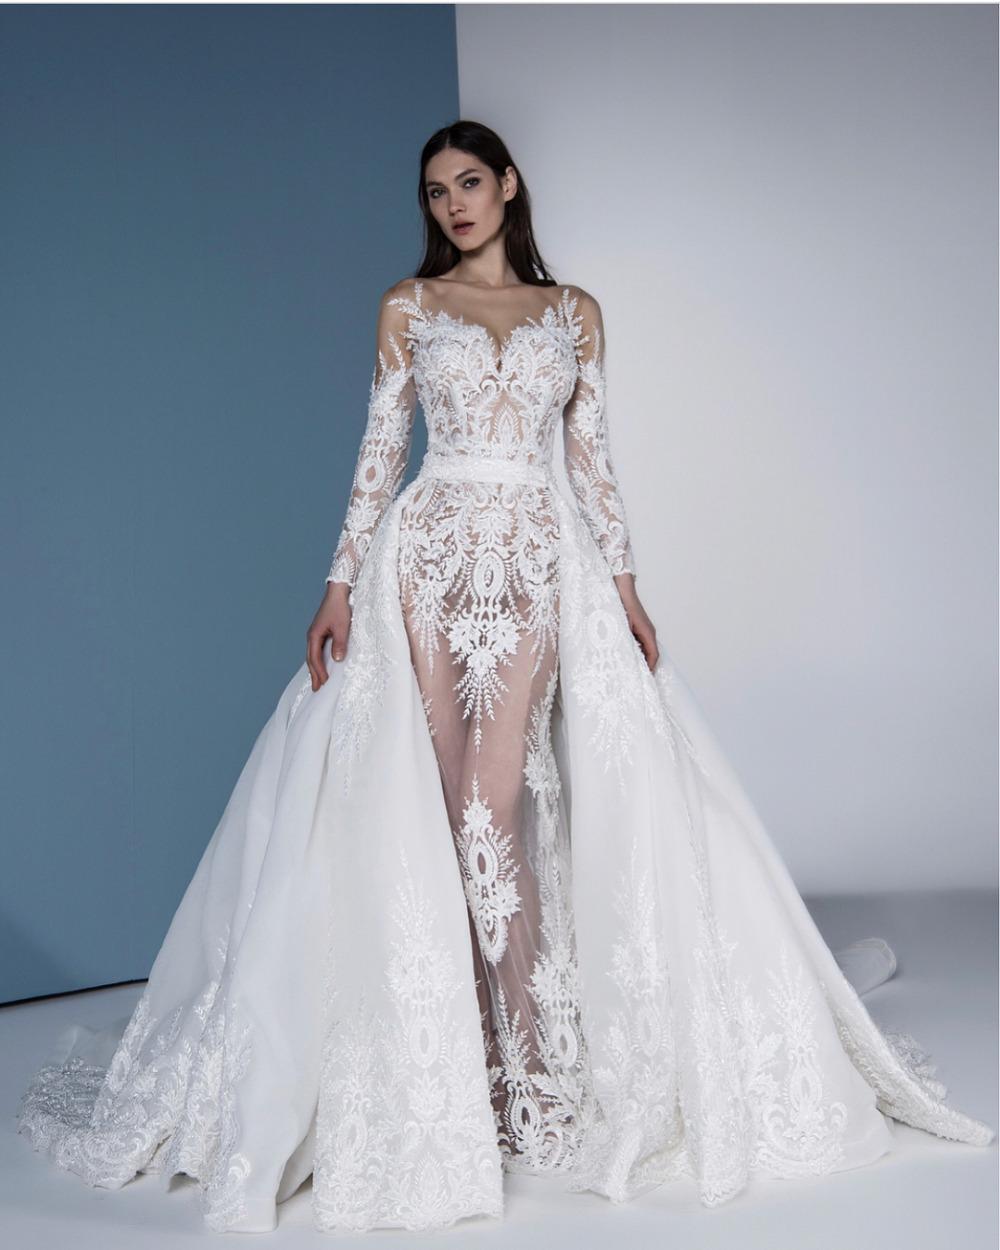 2019 Wedding Dresses With Sleeves: Aliexpress.com : Buy Eslieb High End Free Shipping Lace